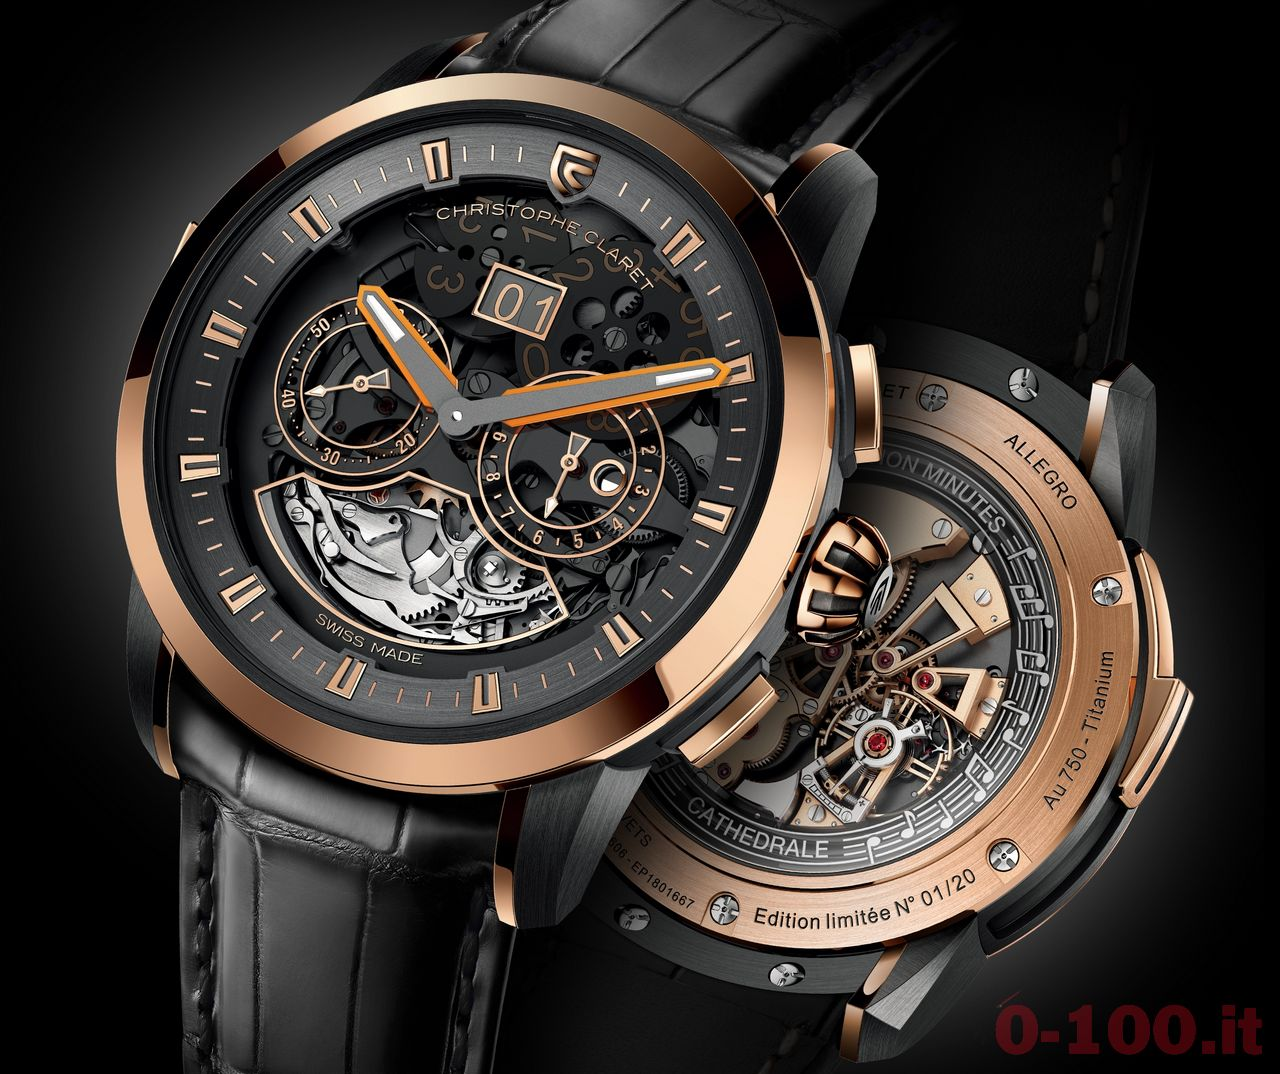 christophe-claret-allegro-limited-edition-prezzo-price_0-100_1